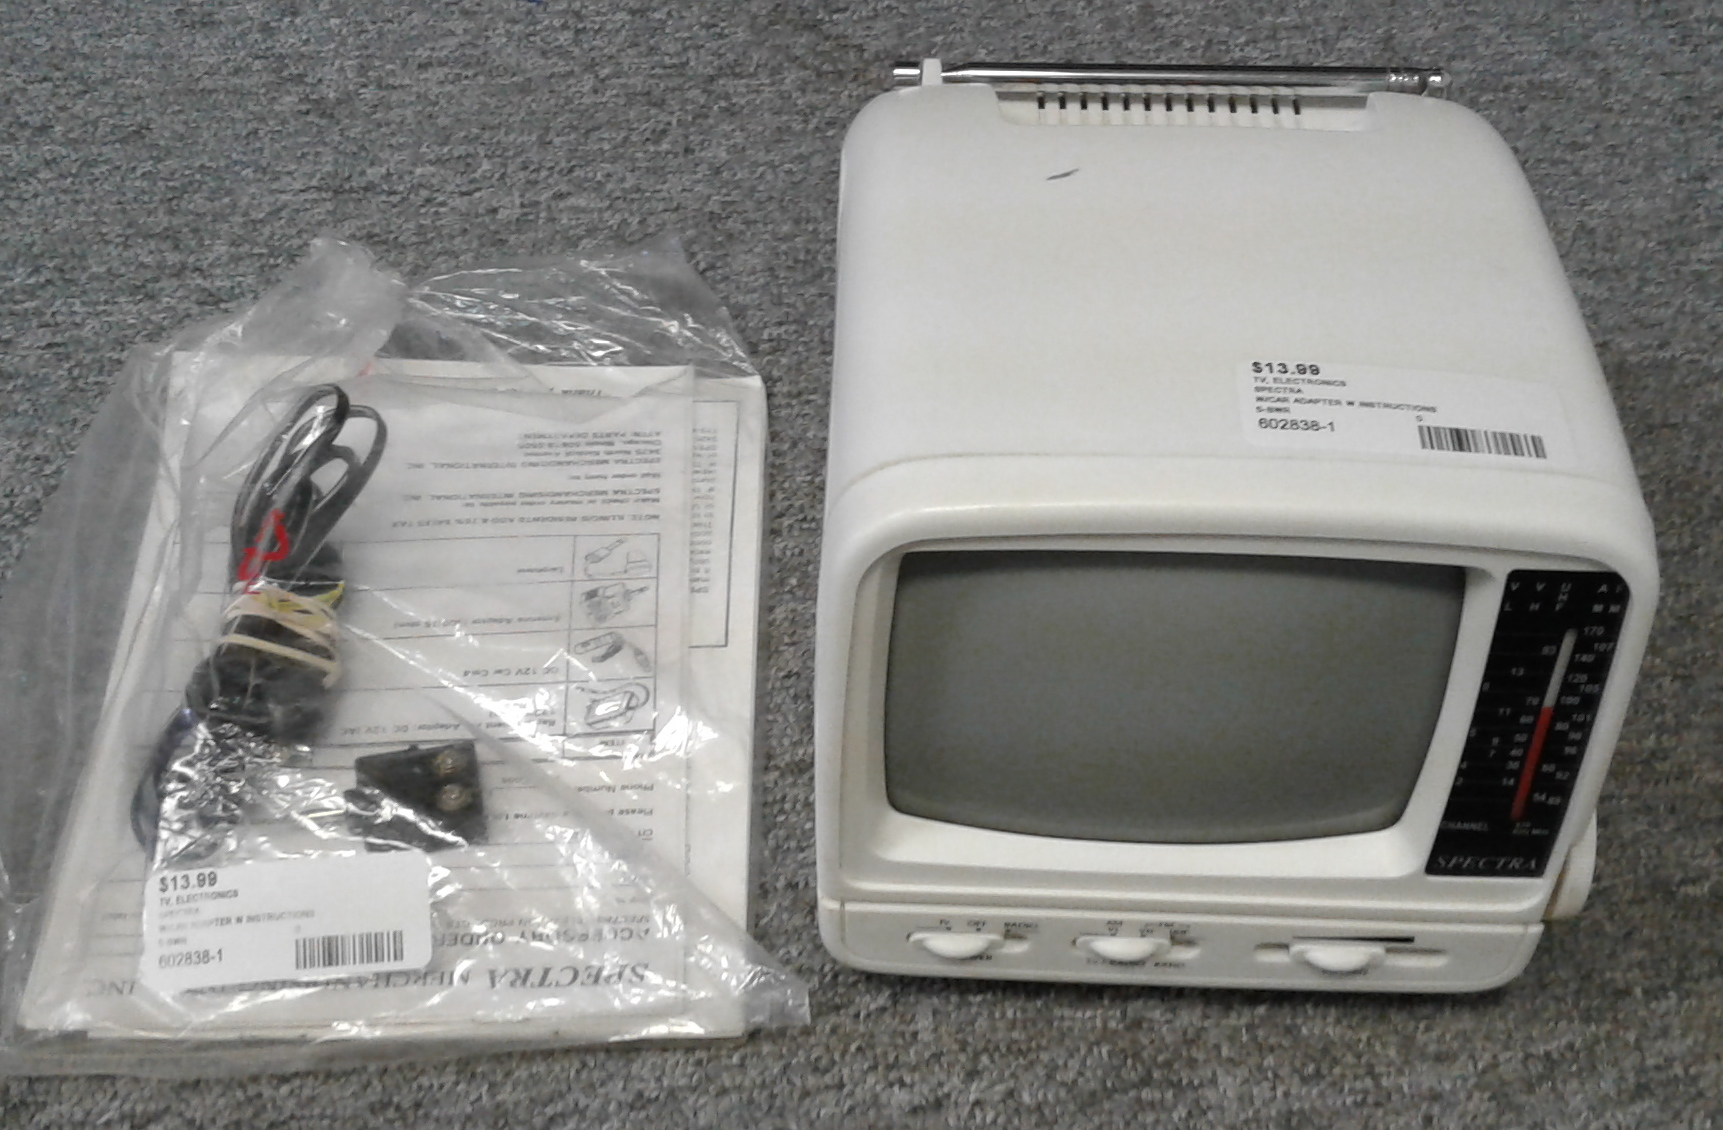 SPECTRA 5-BWR PORTABLE TV